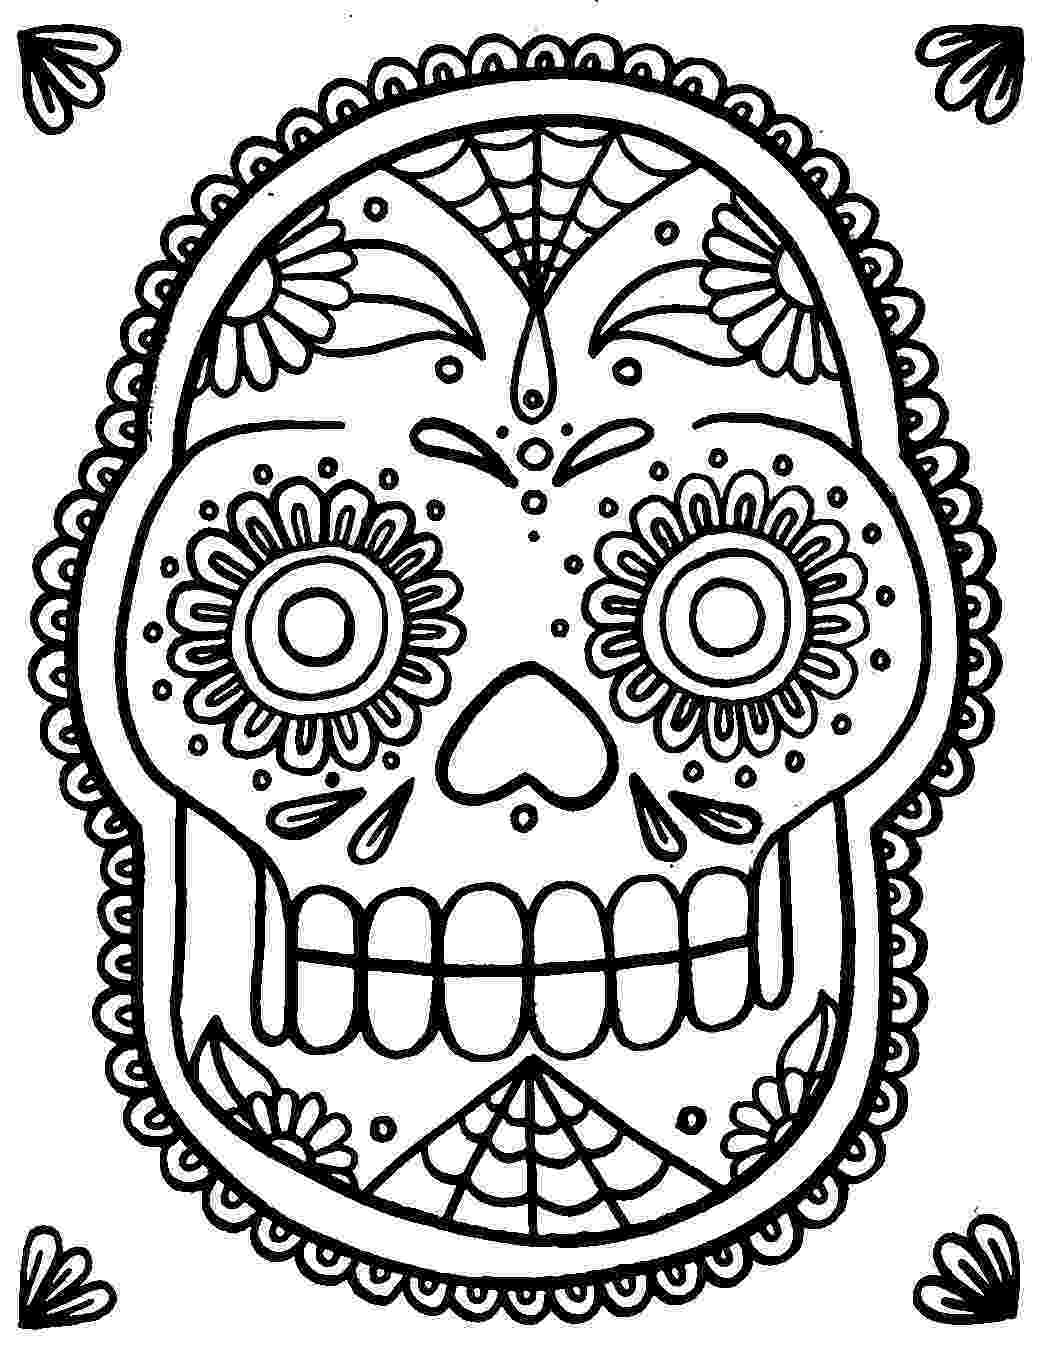 skulls coloring pages yucca flats nm wenchkin39s coloring pages sugar skull pages coloring skulls